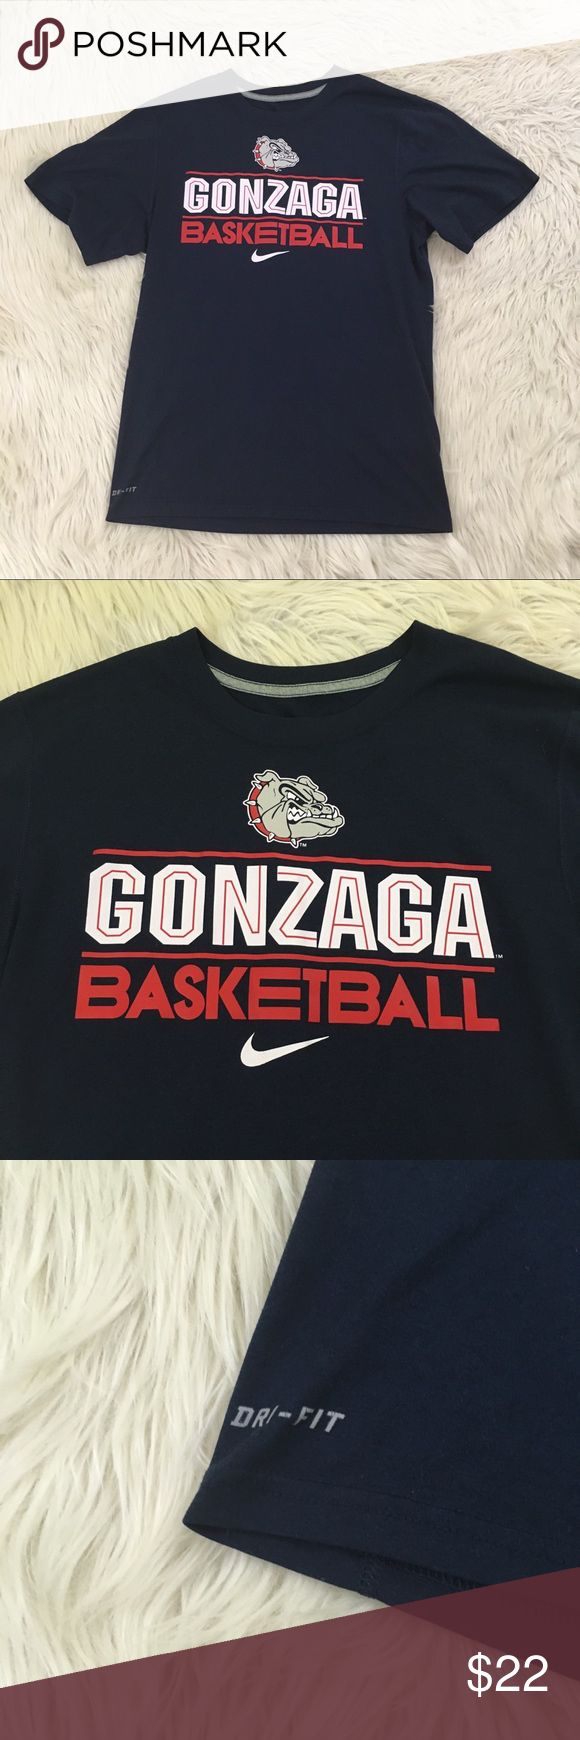 "NWOT Nike Gonzaga University Basketball T-Shirt NEW WITHOUT TAGS! Nike Mens Small Gonzaga University Basketball Dri Fit Shirt. Never worn.  Length; 27"" Armpit to armpit: 20.5""  📌NO lowball offers 📌NO modeling 📌NO trades  Come check out the rest of our closet! We have various brands and ALL different sizes! Nike Shirts Tees - Short Sleeve"